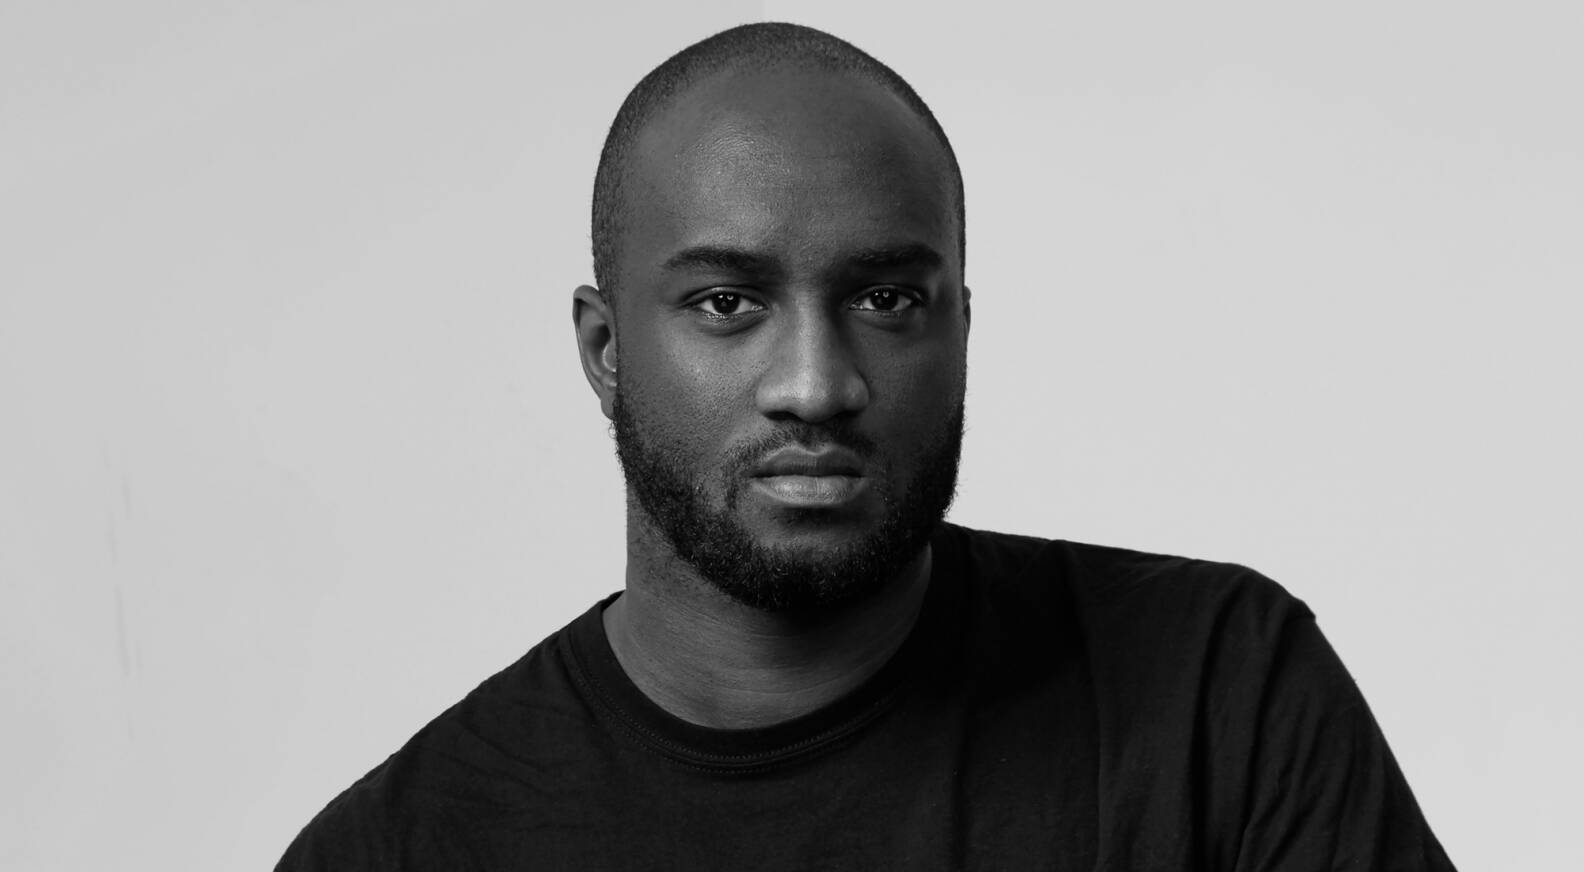 a1418312a961 Louis Vuitton welcomes Virgil Abloh as its new Men s Artistic Director.  Fashion   Leather Goods. · March 26